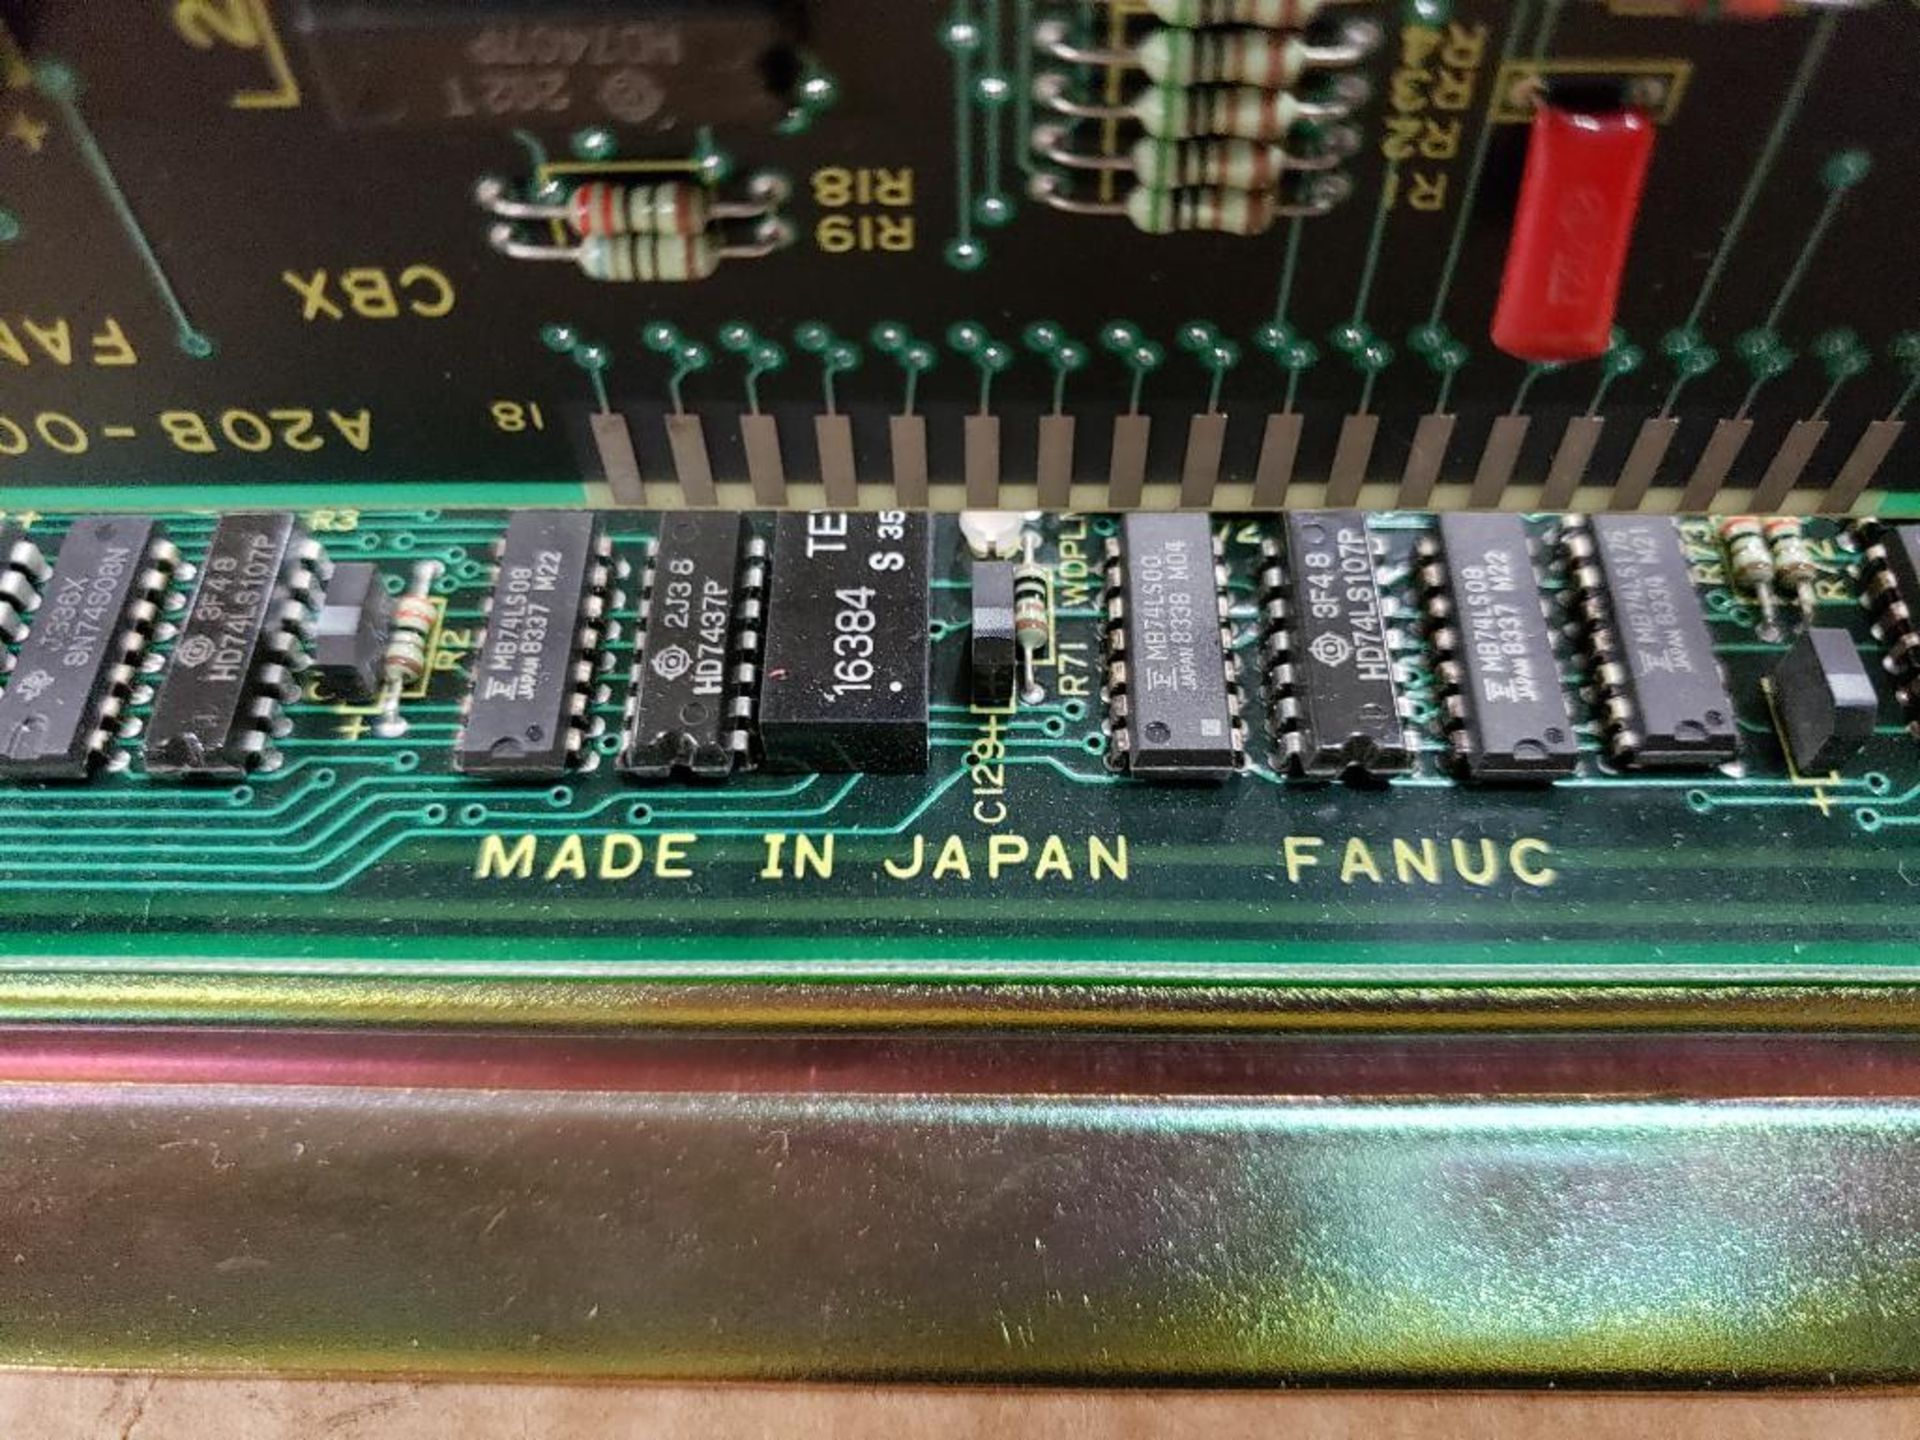 Fanuc A20B-0009-0930/09C Motherboard. - Image 2 of 20